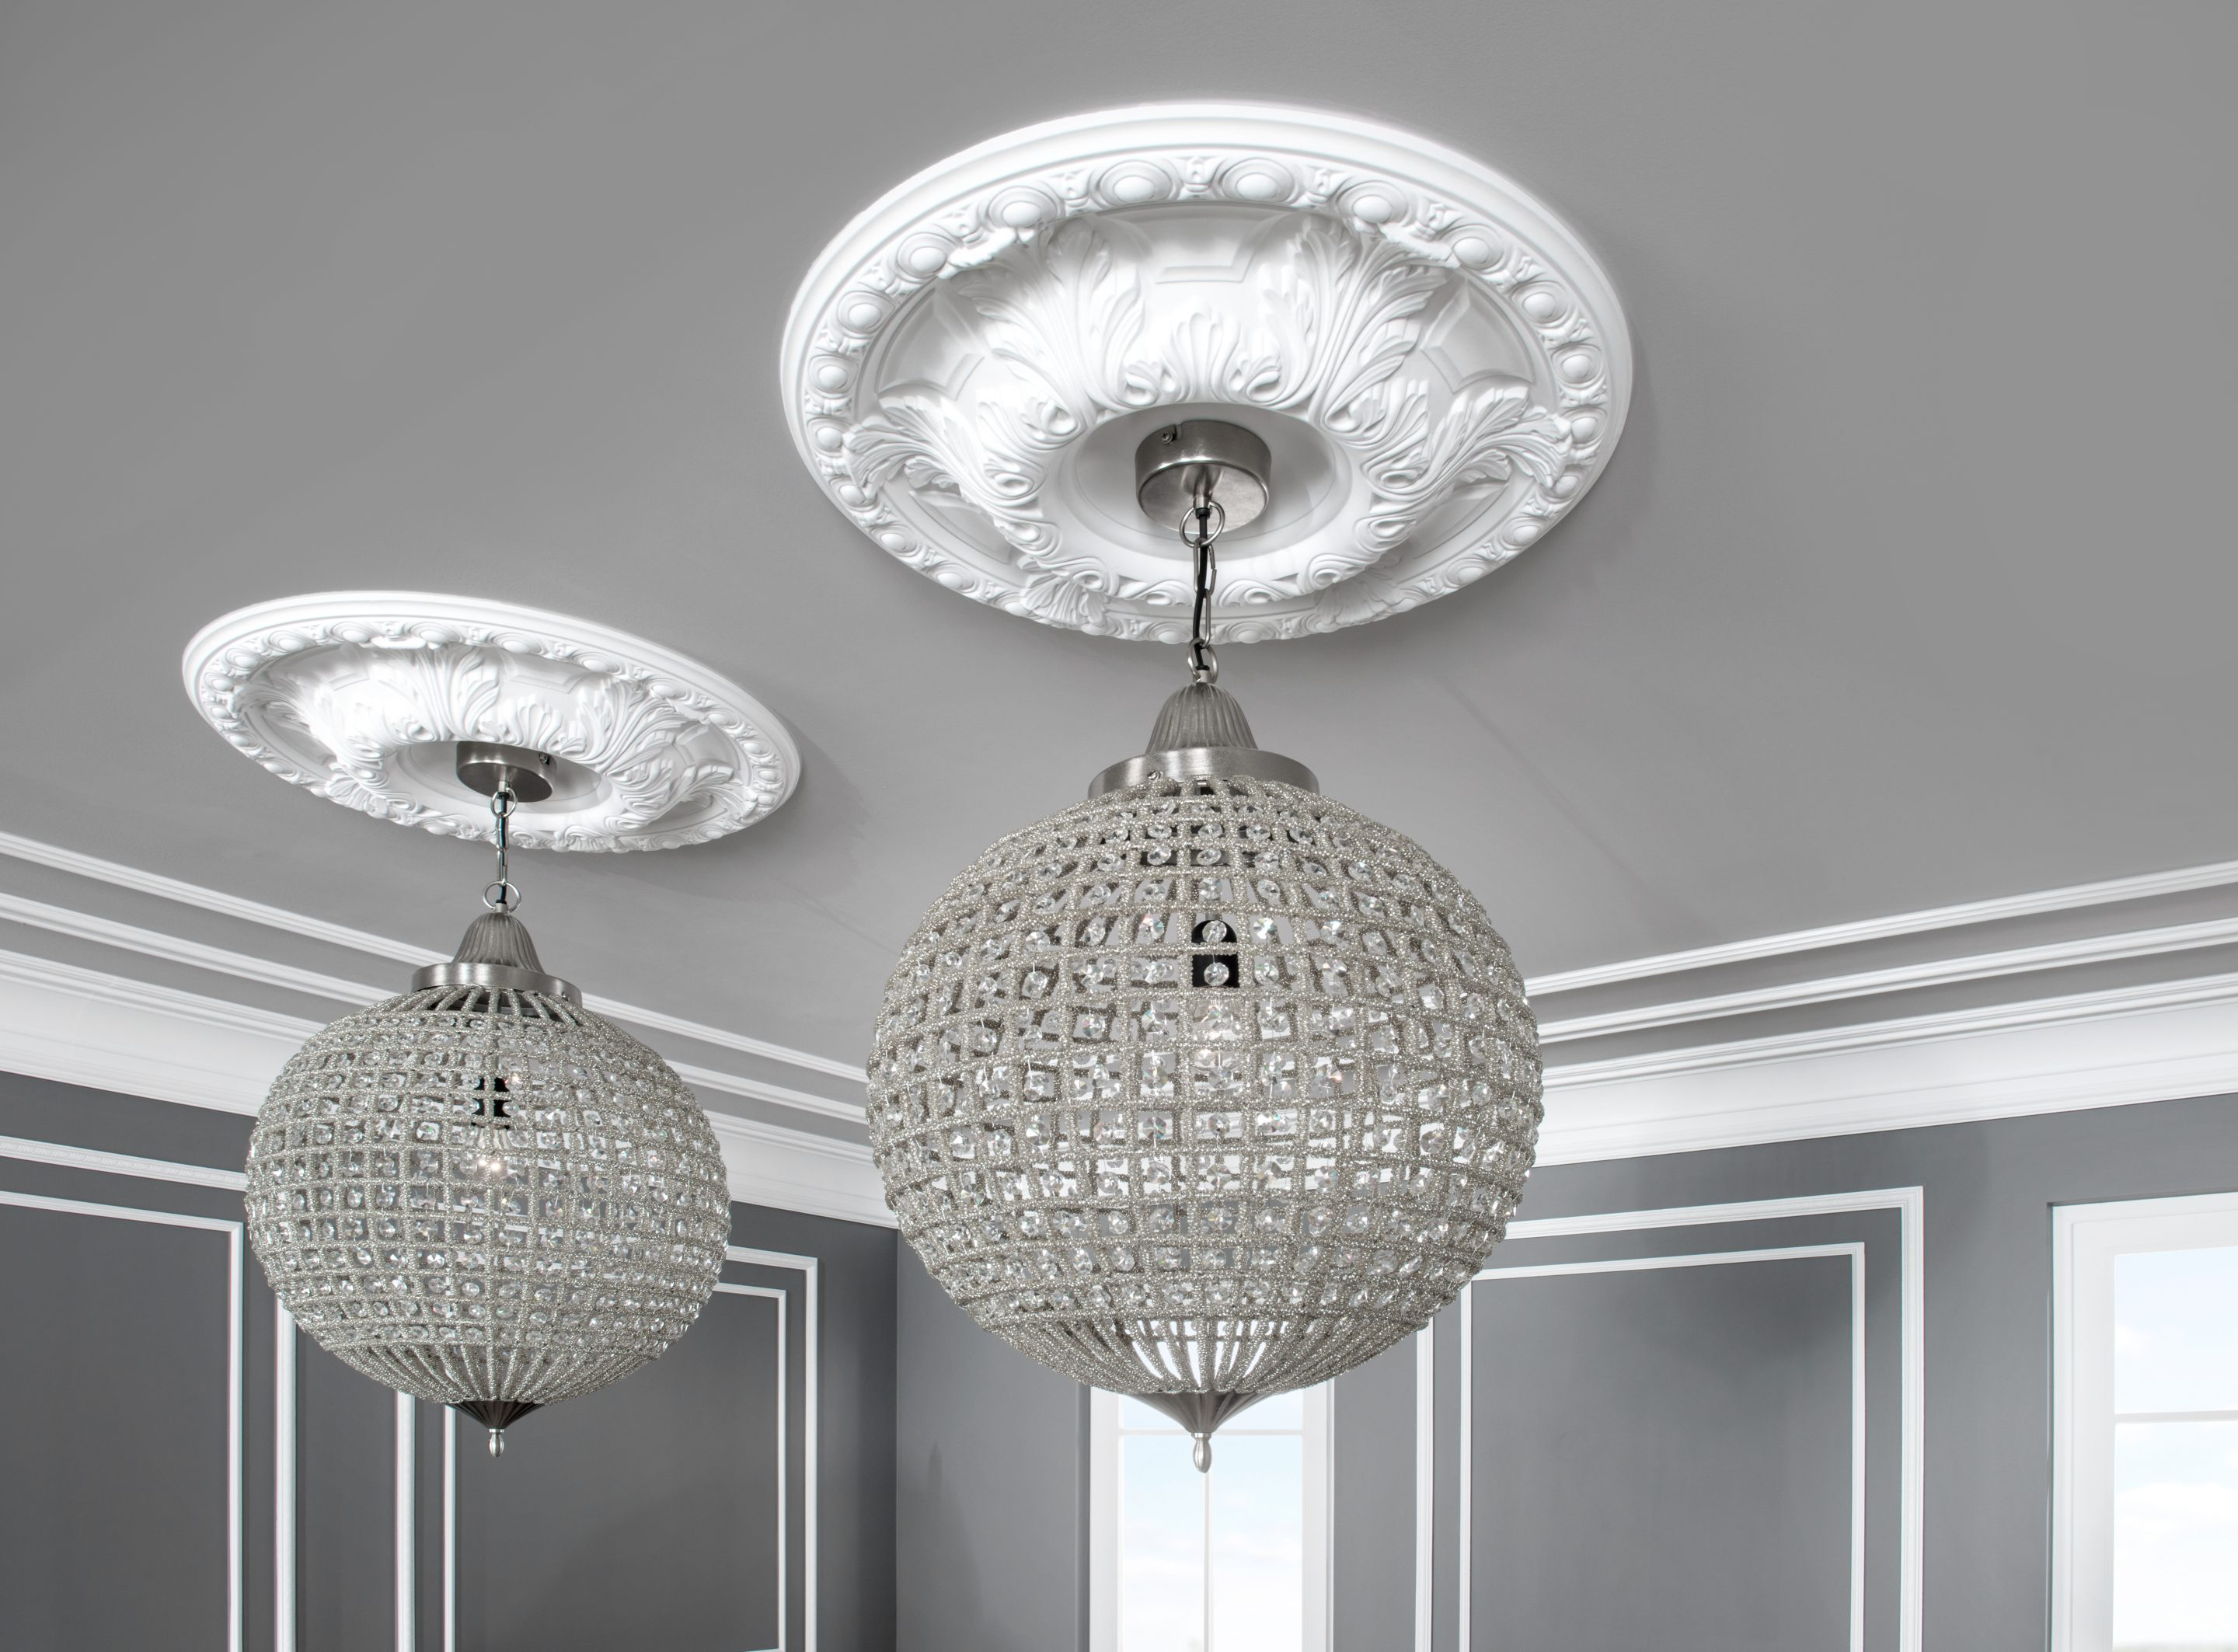 Ceiling Roses Roman Victorian Georgian Art Deco And